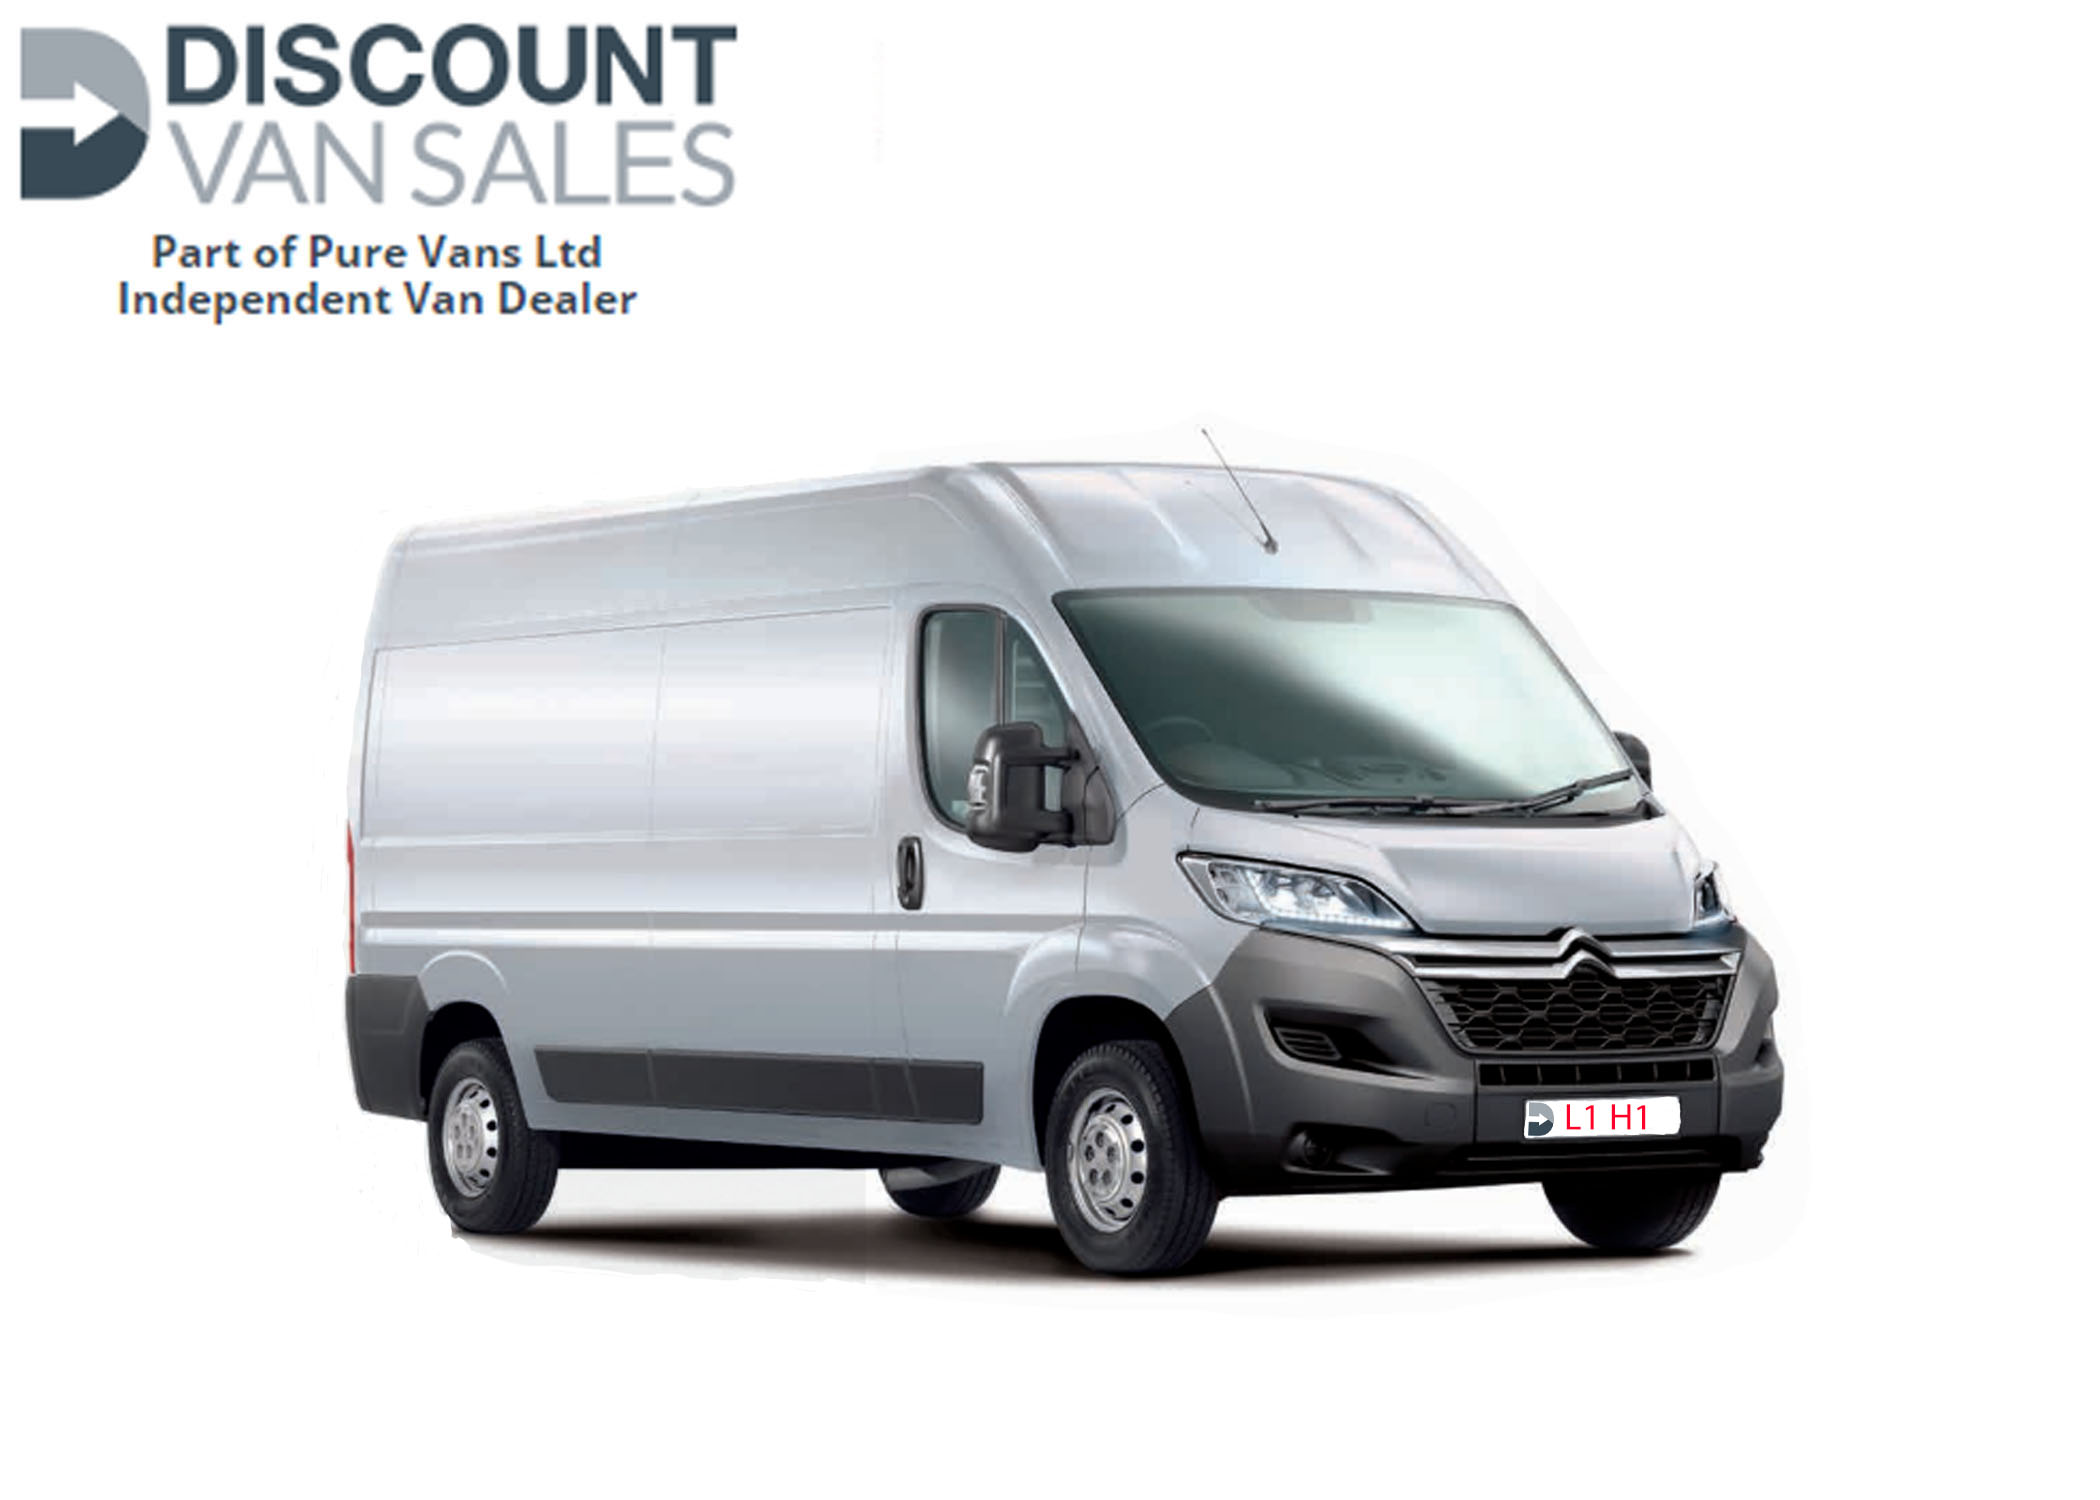 CITROEN RELAY 30 2.0 BLUEHDI 110 L1 H1 ENTERPRISE Side view.jpg